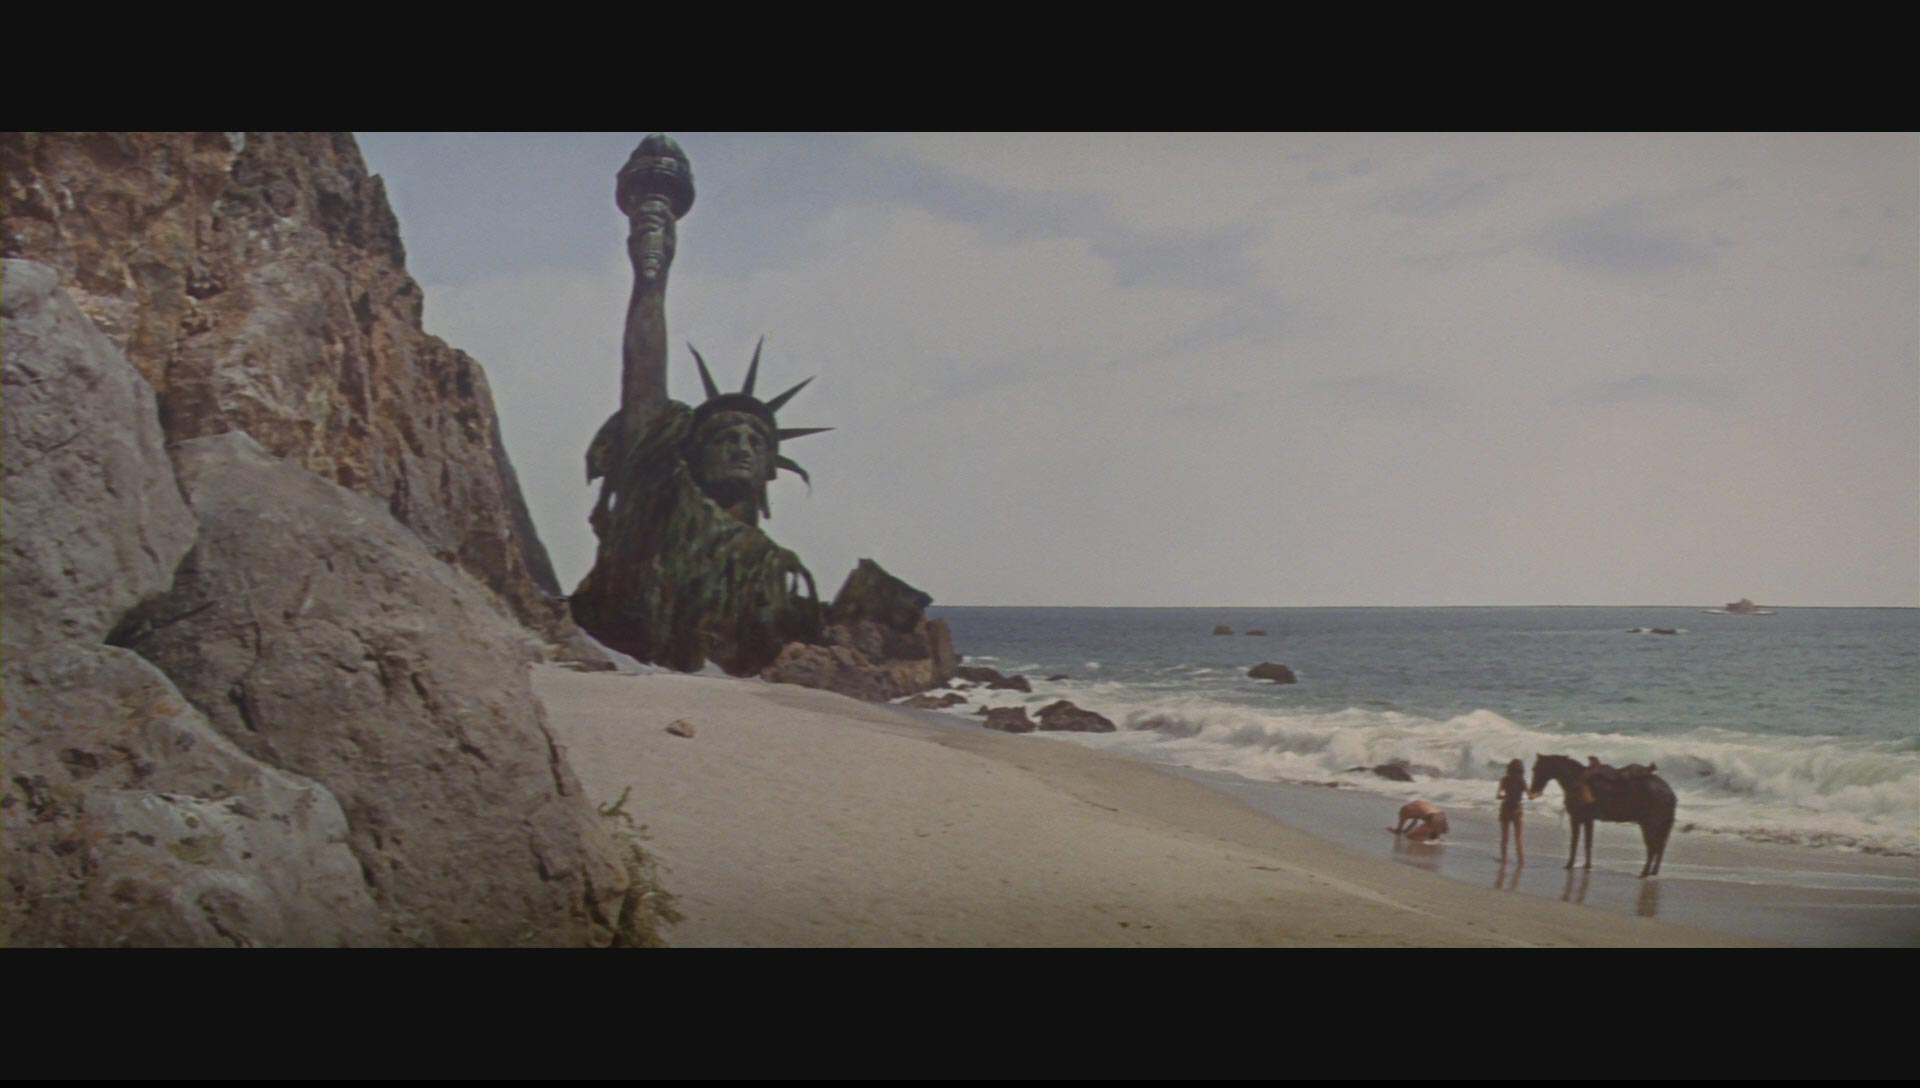 https://i2.wp.com/www.originalprop.com/blog/wp-content/uploads/2009/03/planet-of-the-apes-statue-of-liberty-blu-ray-disc-screencap-hd-1080p-05.jpg